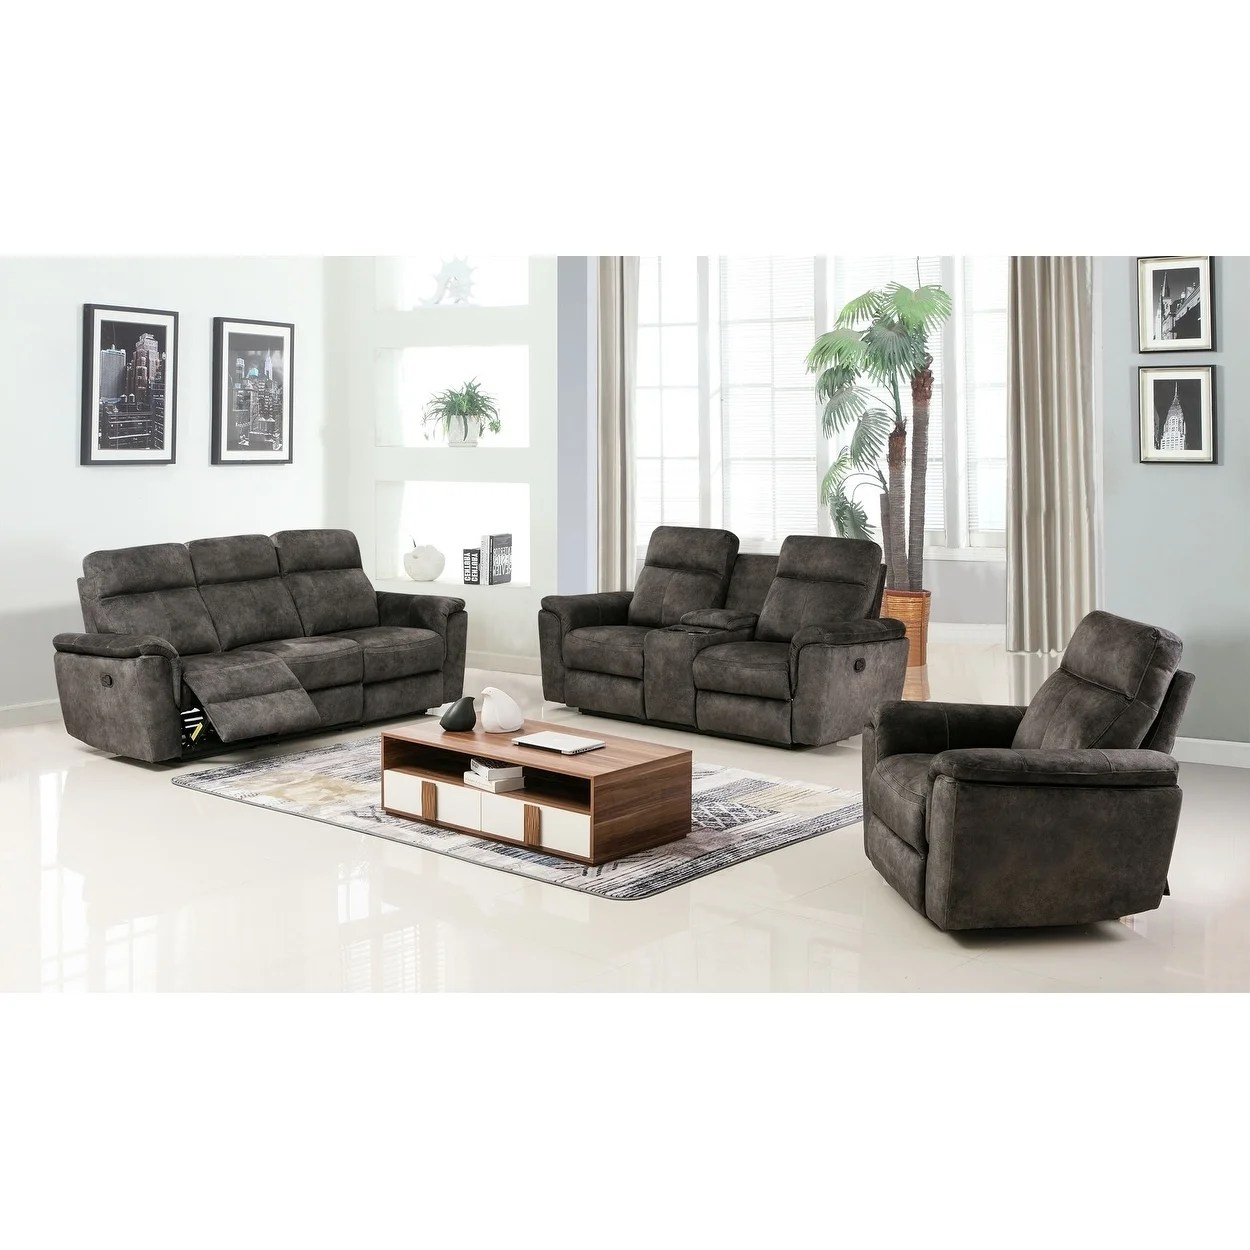 Modern Living Room Recliners Gu Industries Palomino Fabric Upholstered 3 Piece Living Room Recliner Sets